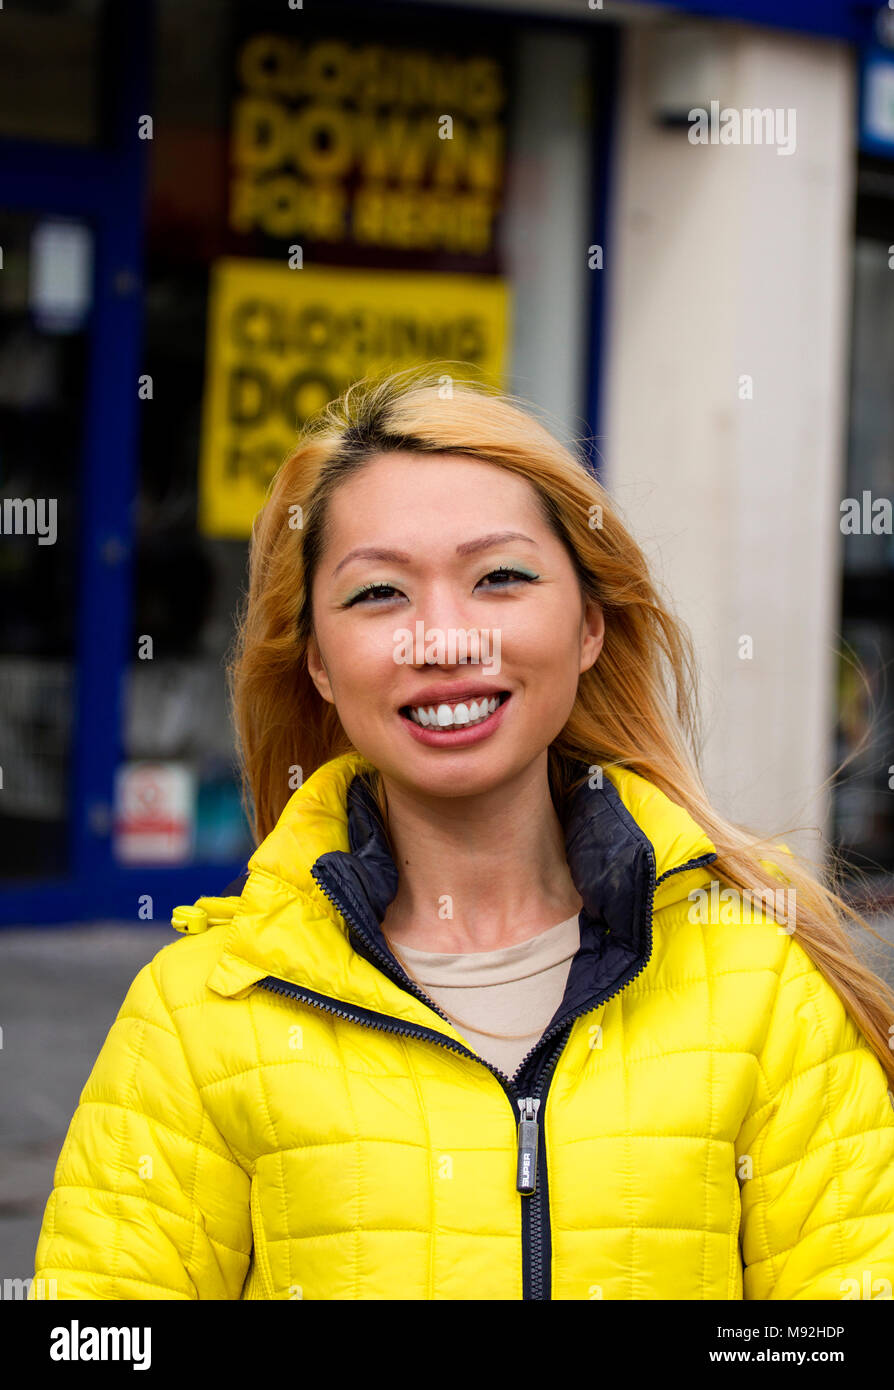 A Scottish born Chinese woman with a happy smiling face posing to have her photograph taken on a windy day in Dundee, UK Stock Photo